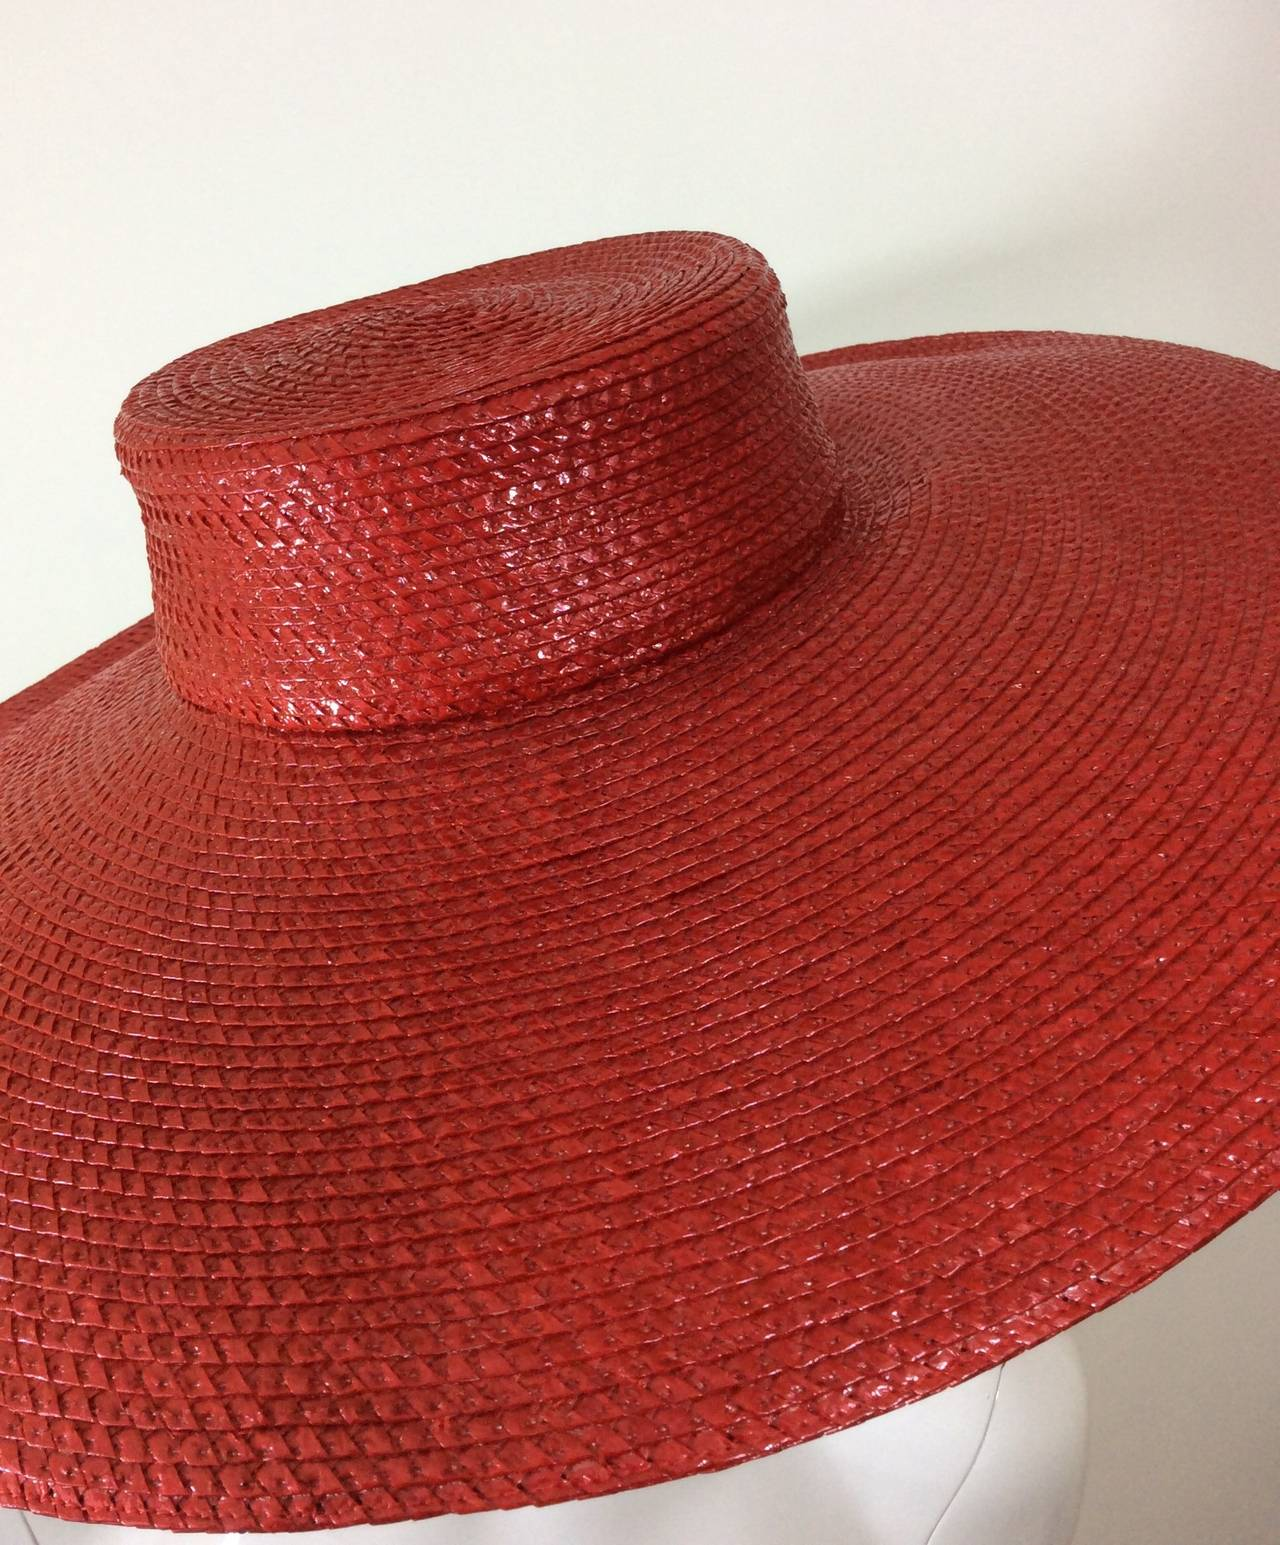 Vintage Givenchy Boutique Glossy Straw Red Hat 5